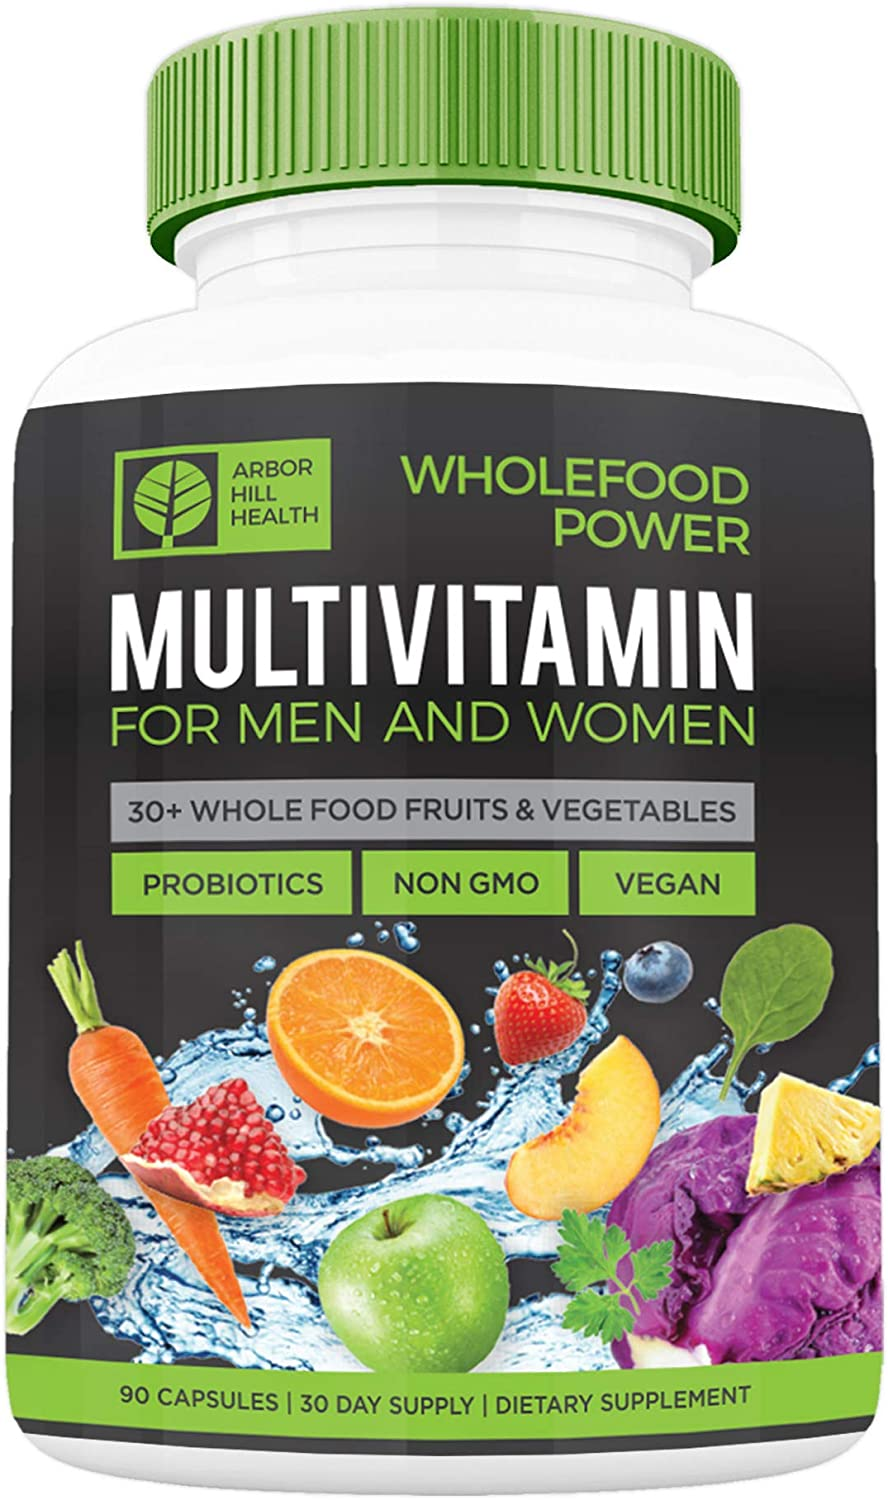 Wholefood Power Daily Multivitamins and Minerals for Women and Men